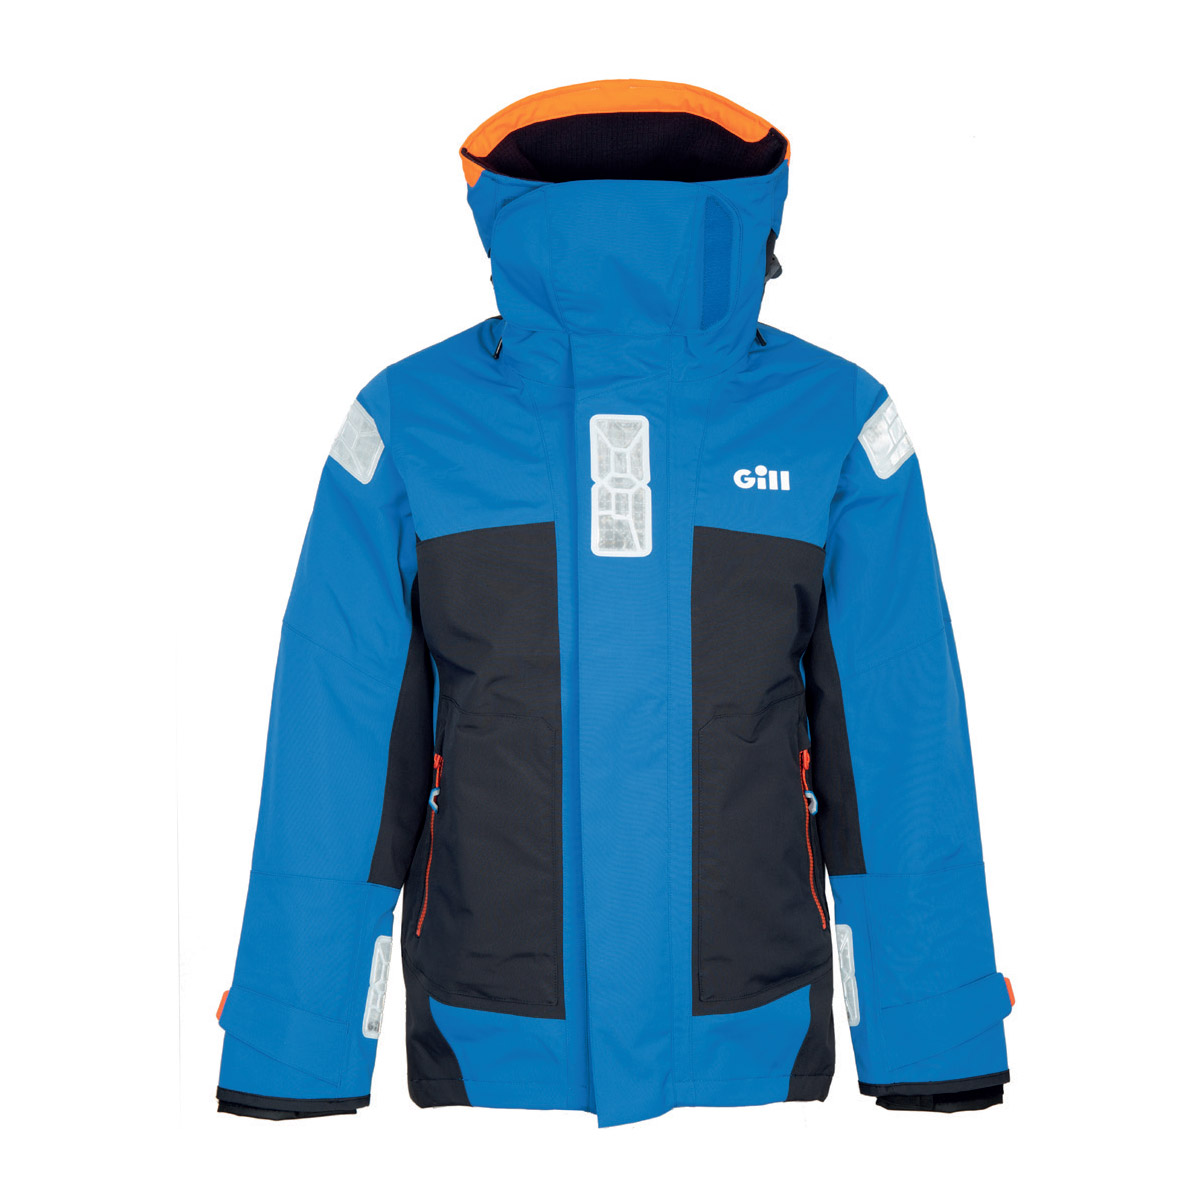 GILL RACE OCEAN JACKET (RS21)